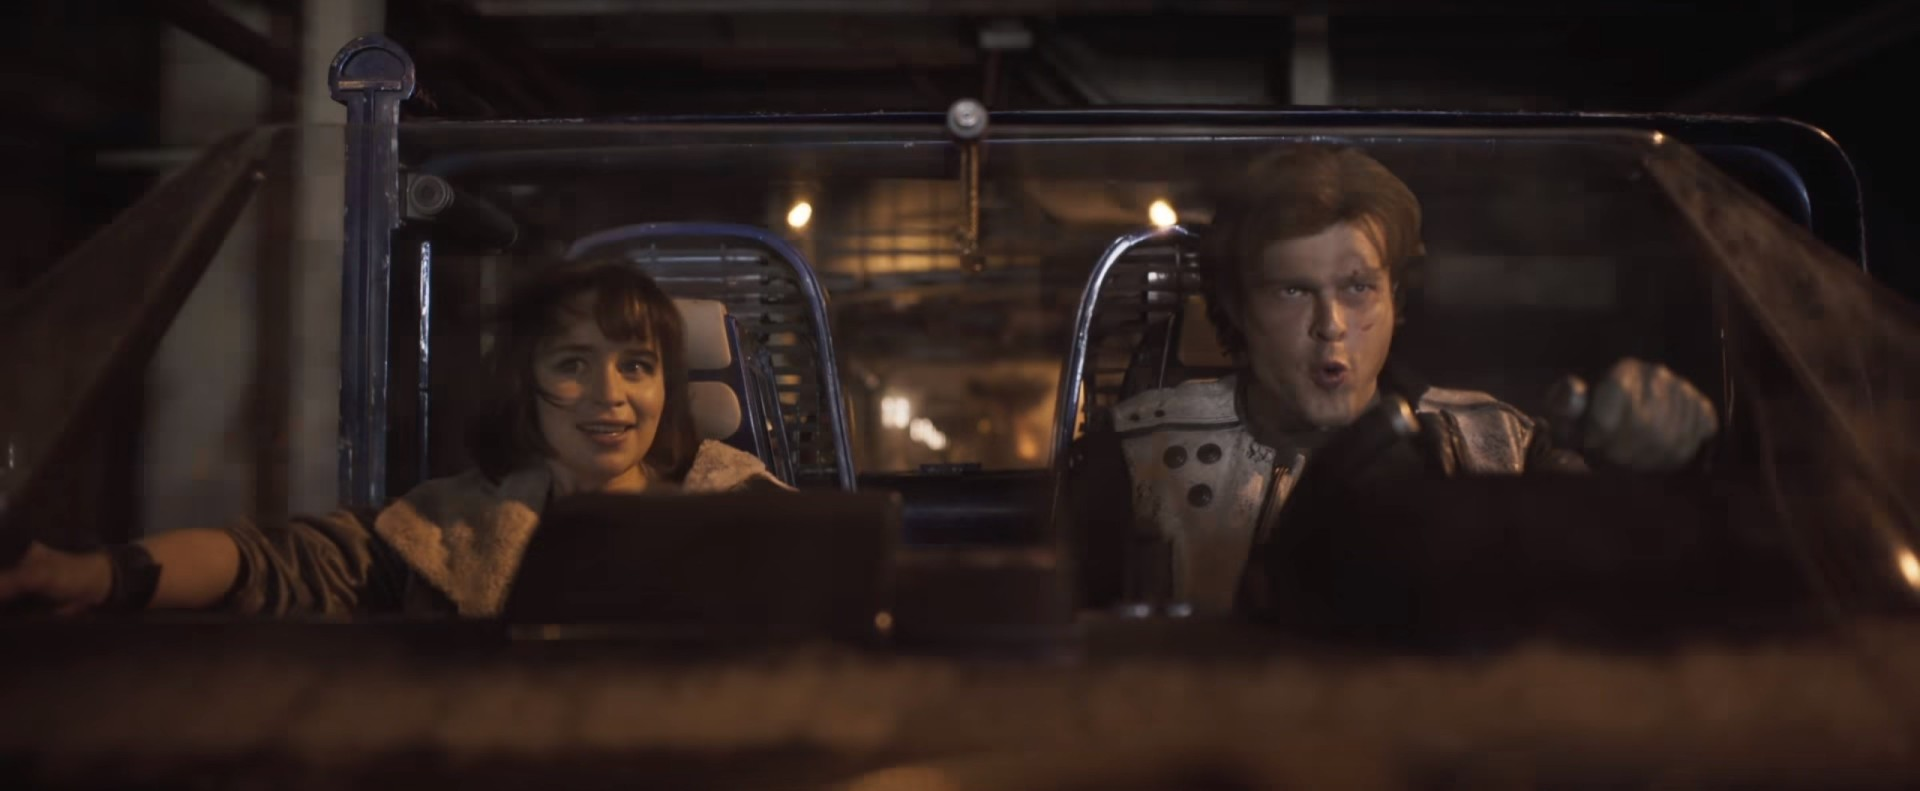 Solo: A Star Wars Story trailer  Has Ron Howard steered film away